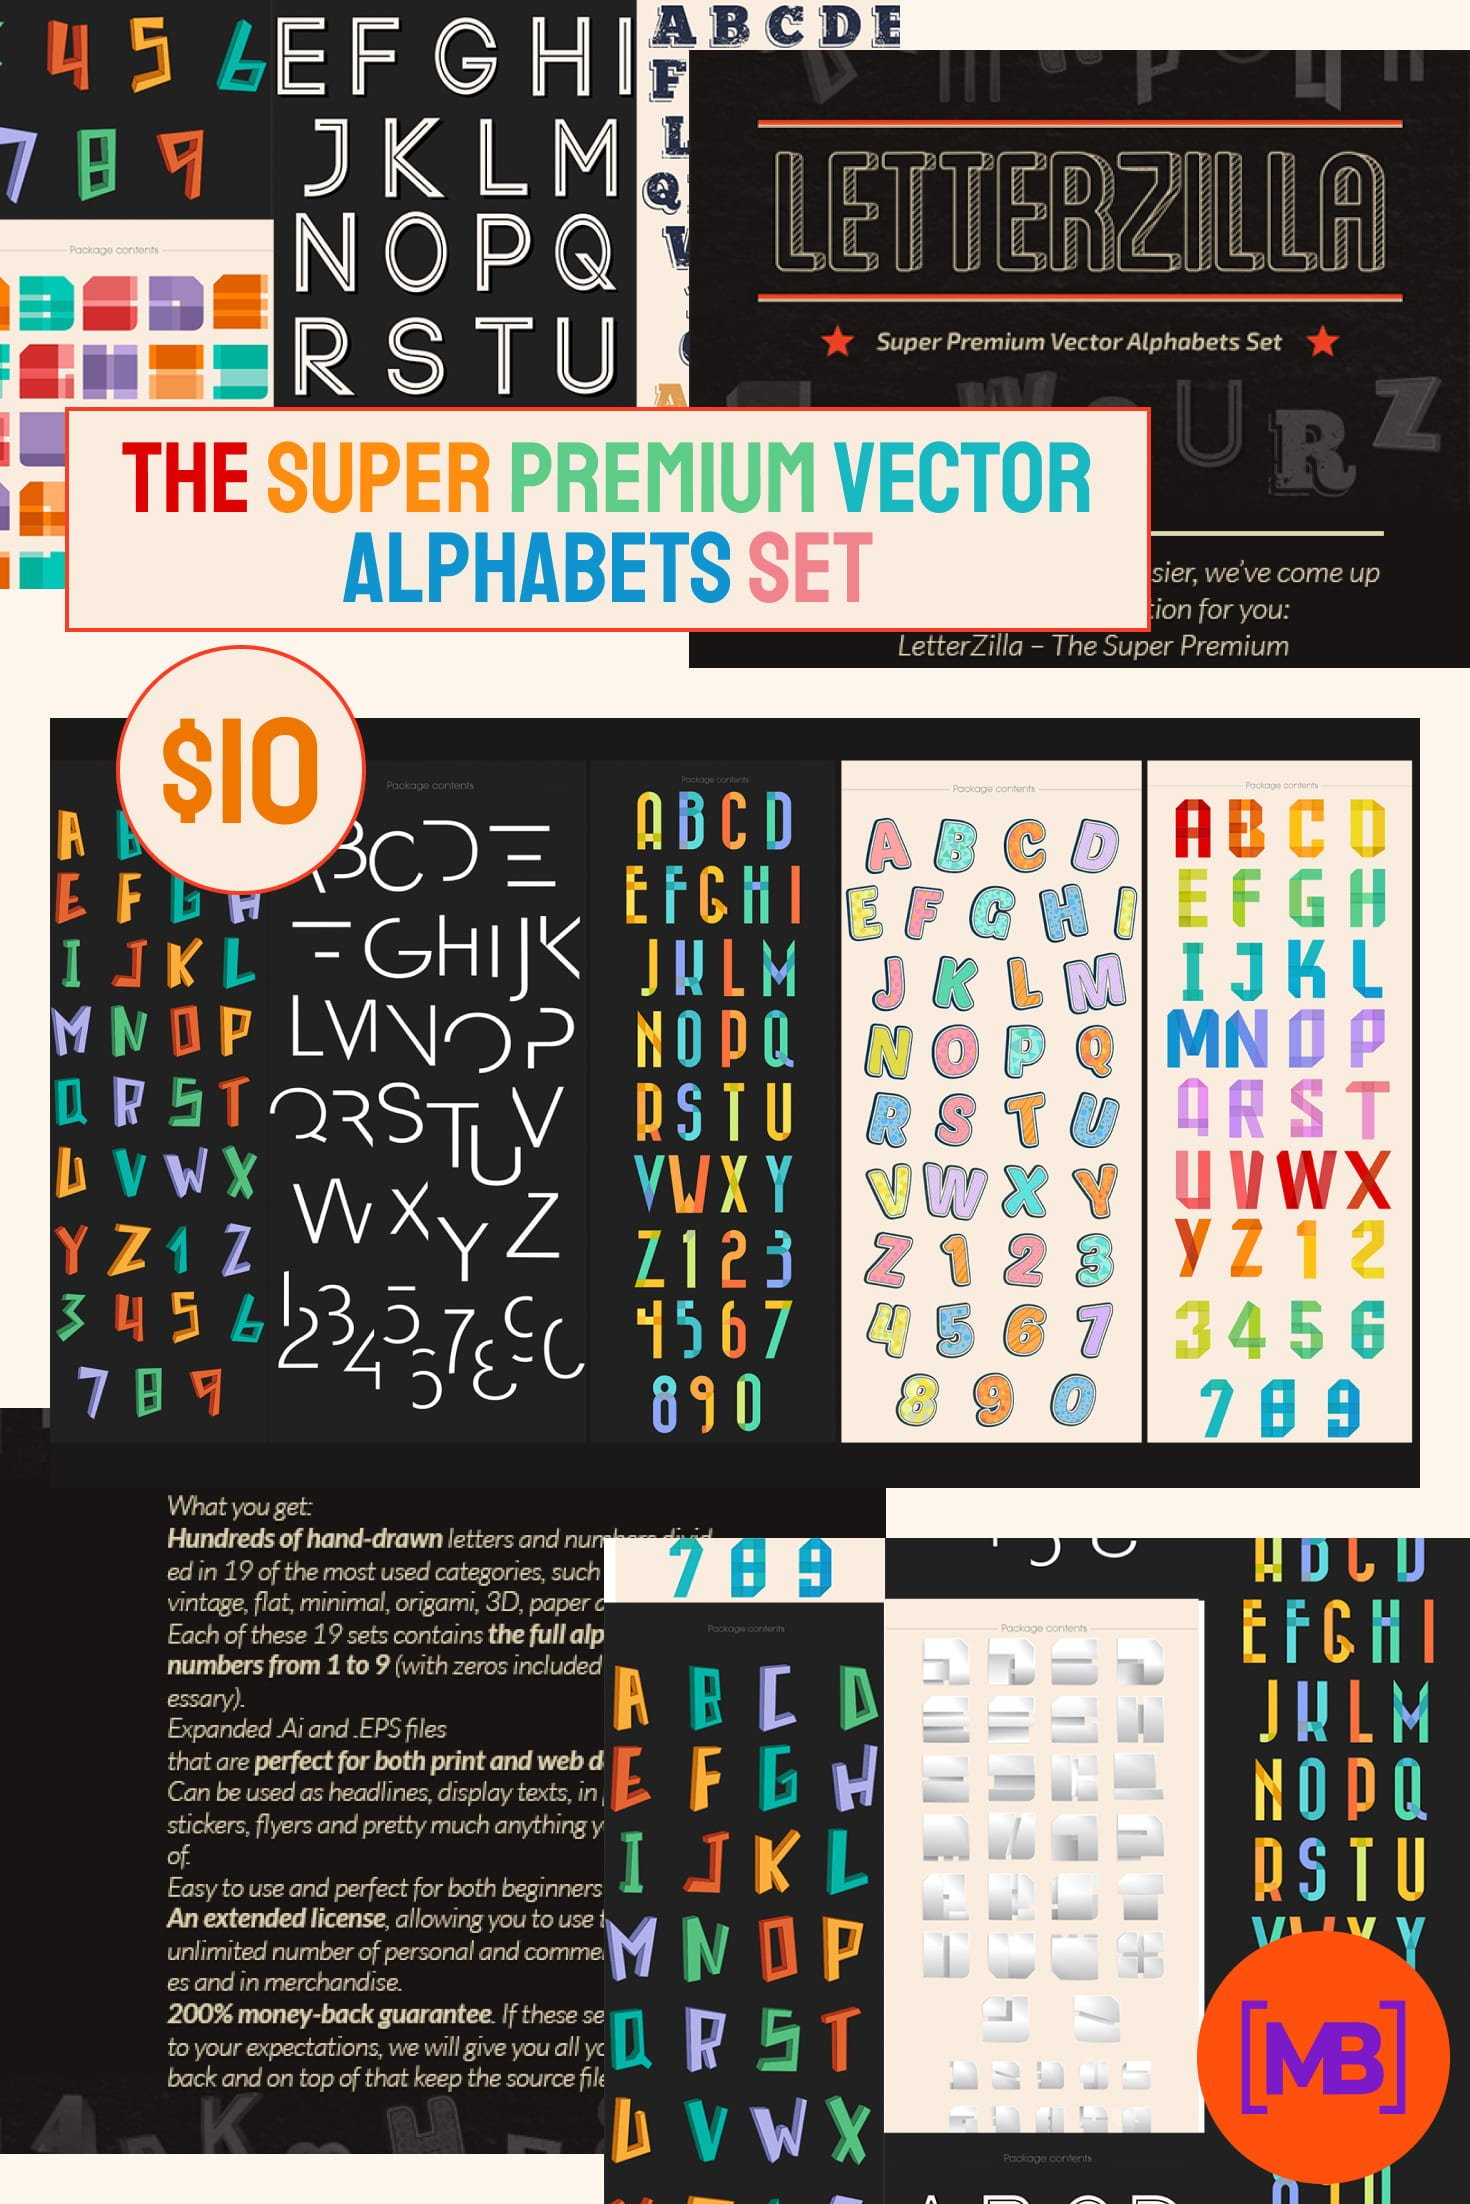 The Super Premium Vector Alphabets Set for Only $10. Collage Image.